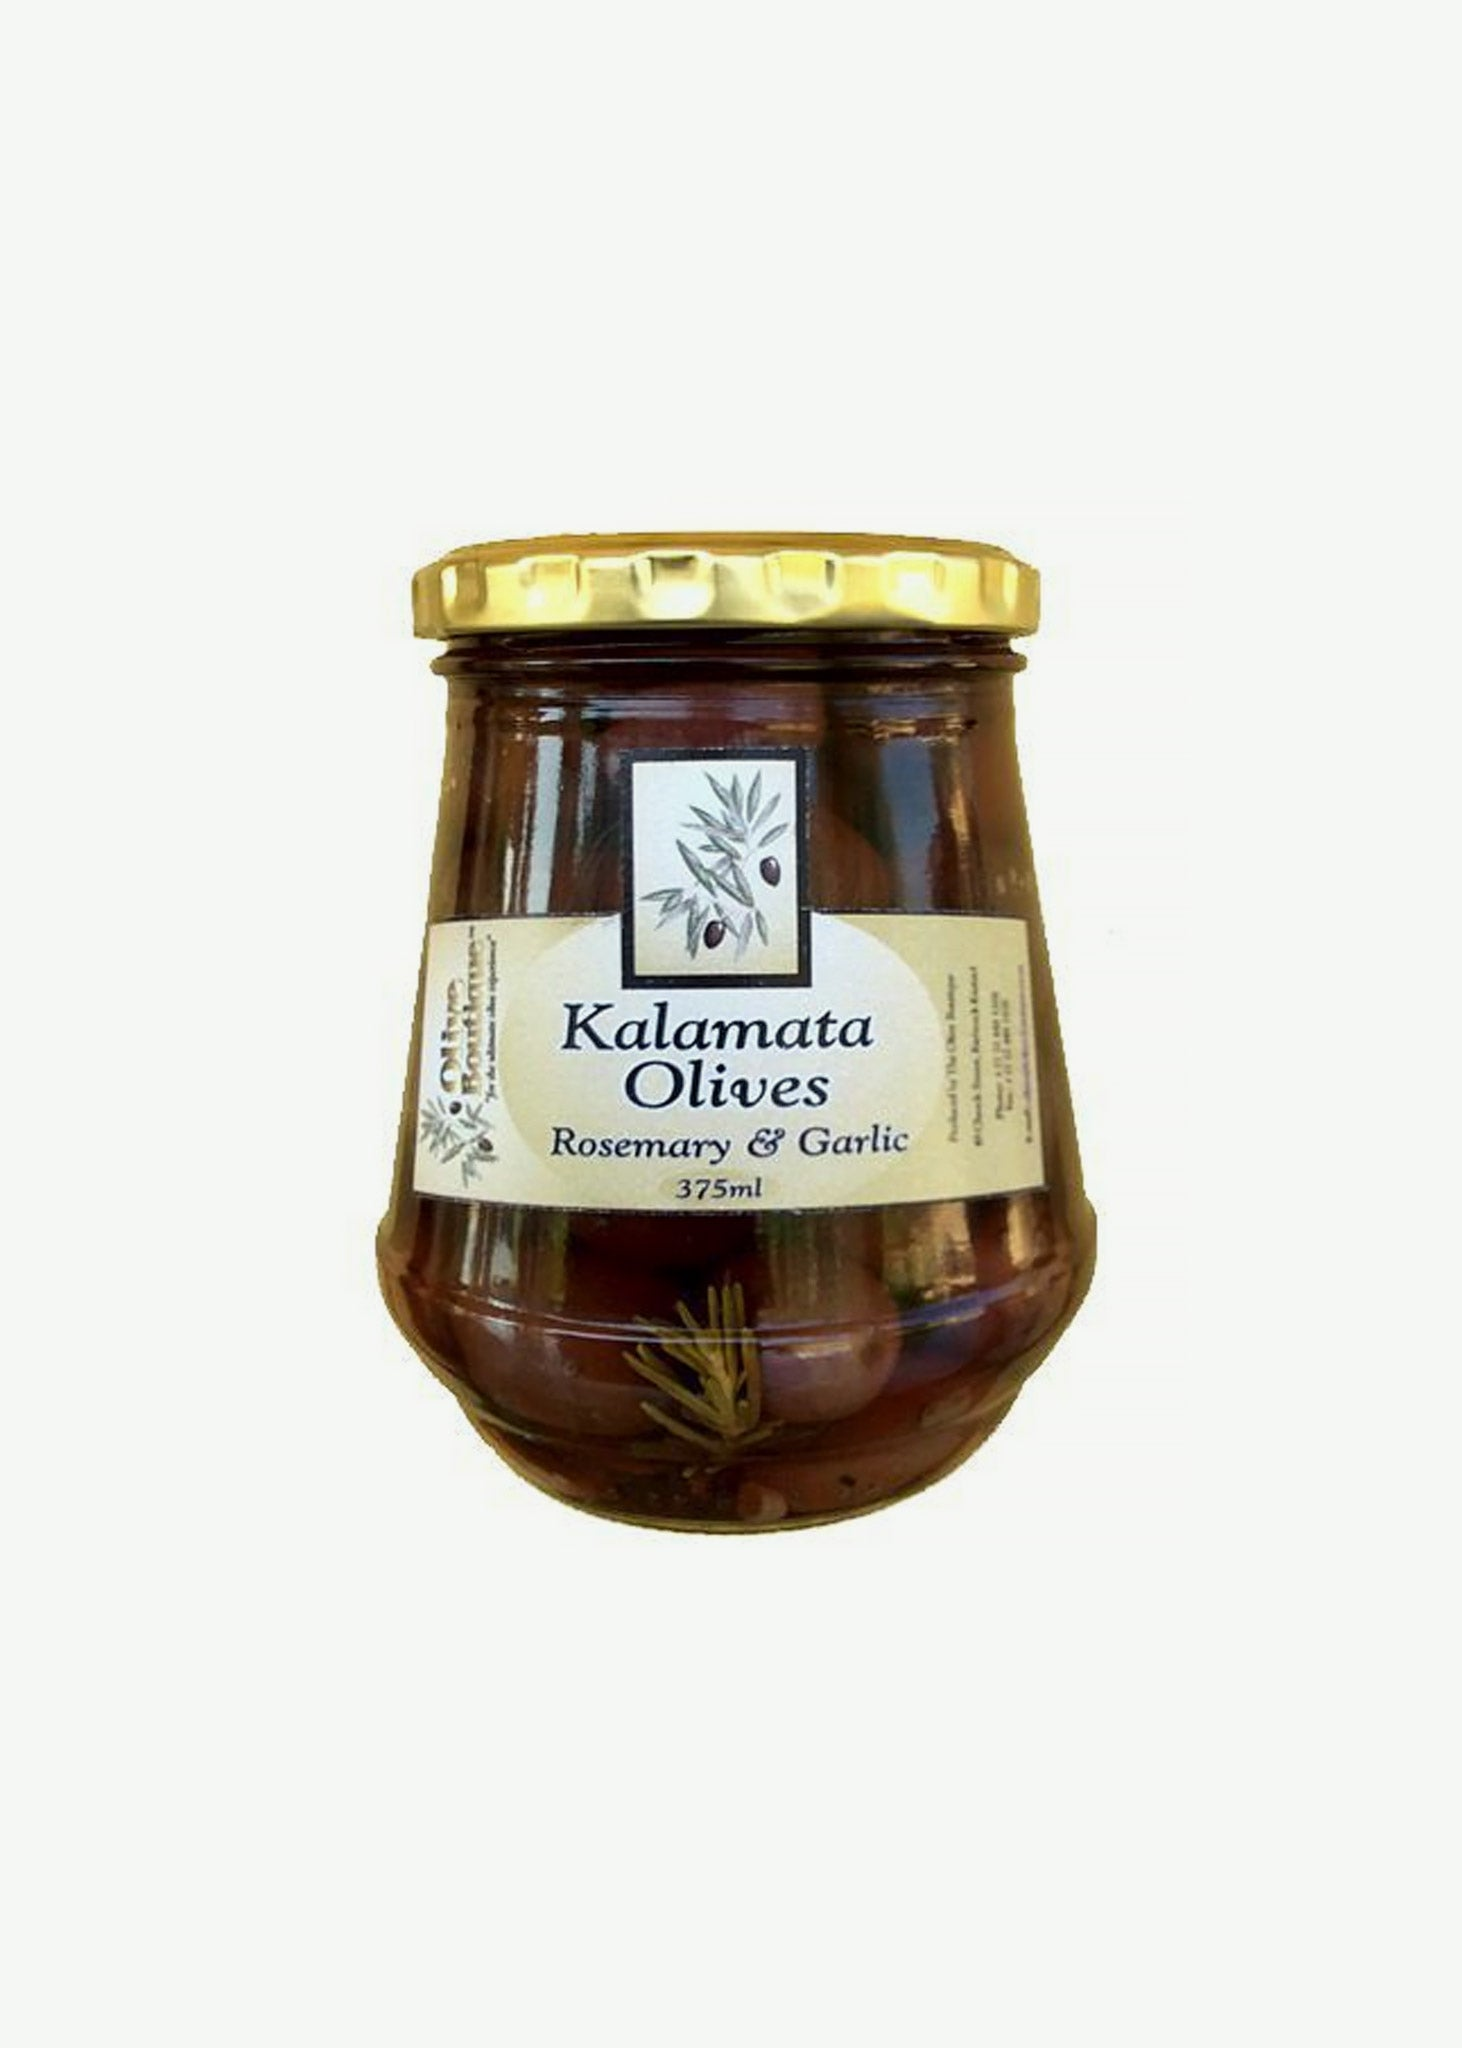 Kalamata Black Olives with Rosemary and Garlic  375ml